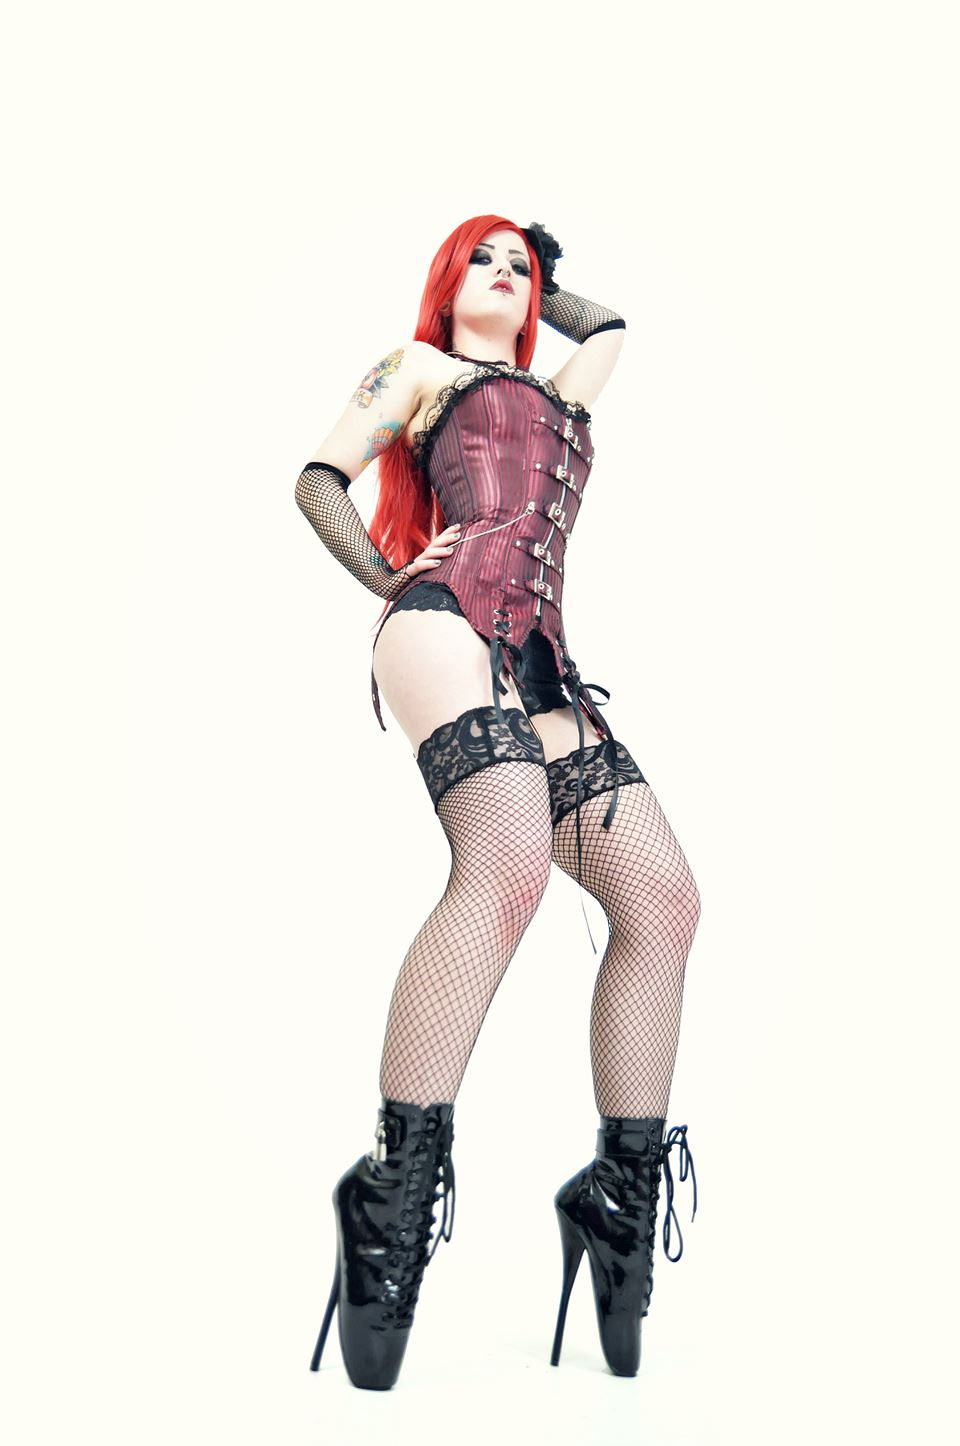 Kitty Von Crypt Photo by Mark Coxon Jaded Images